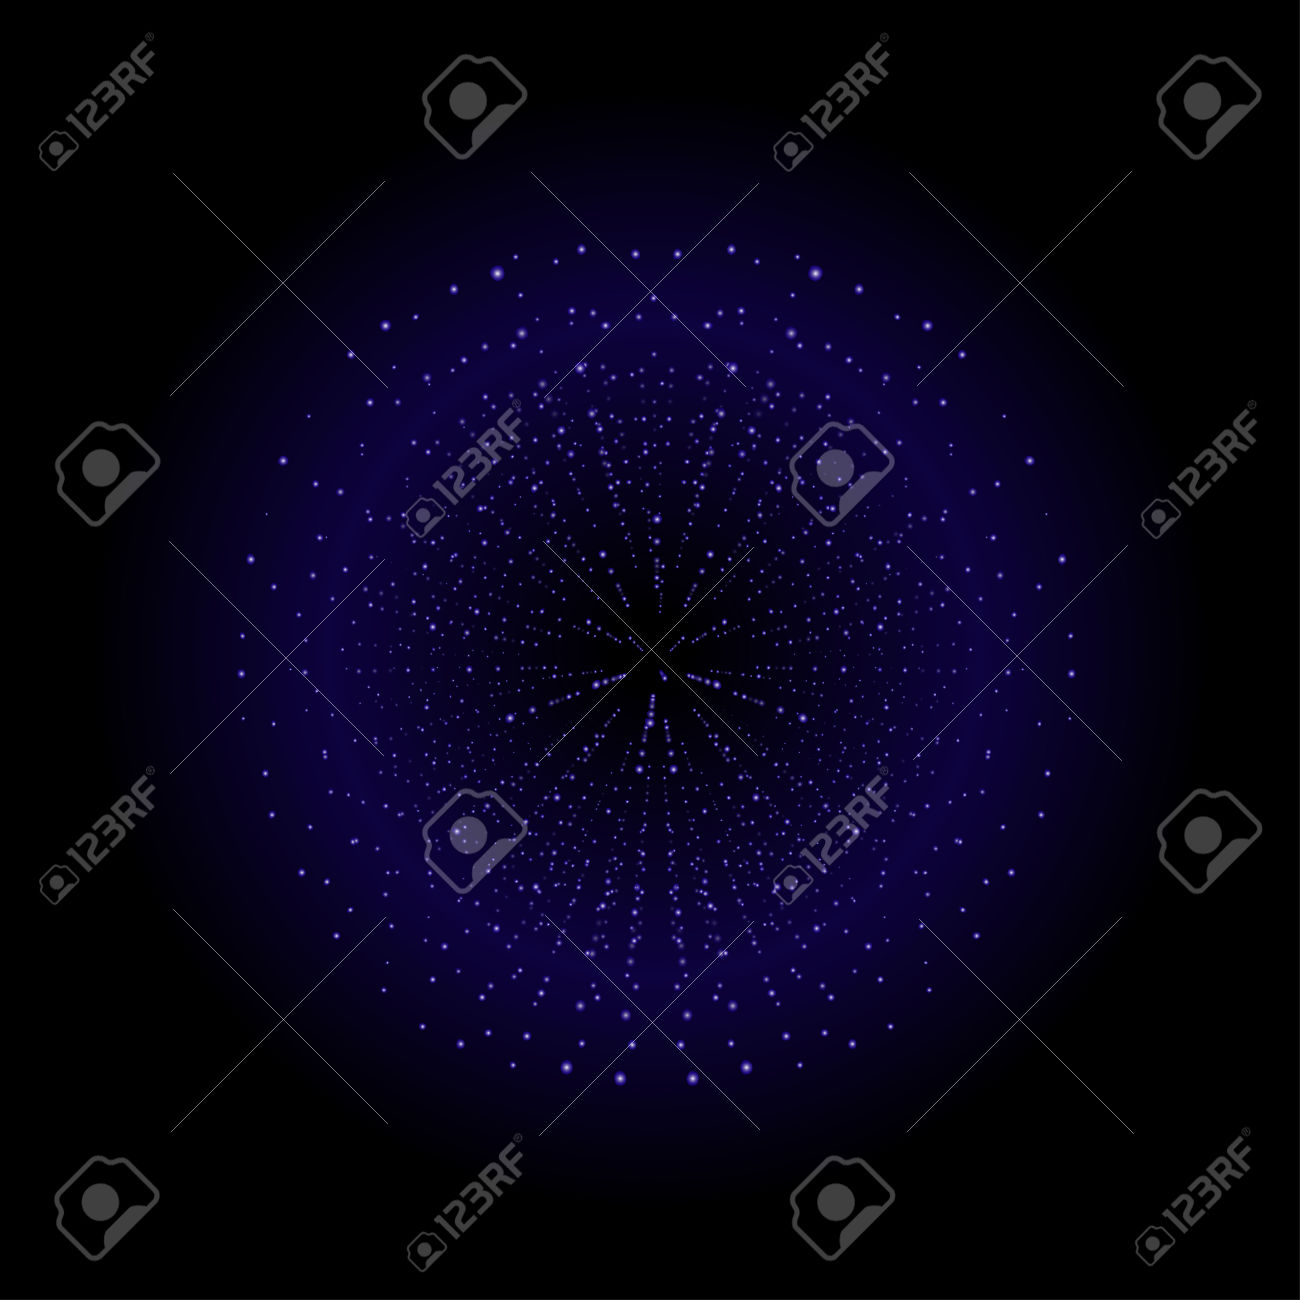 Space Sparks Spray Shiny Explosion. Violet Color Salute. Vector.